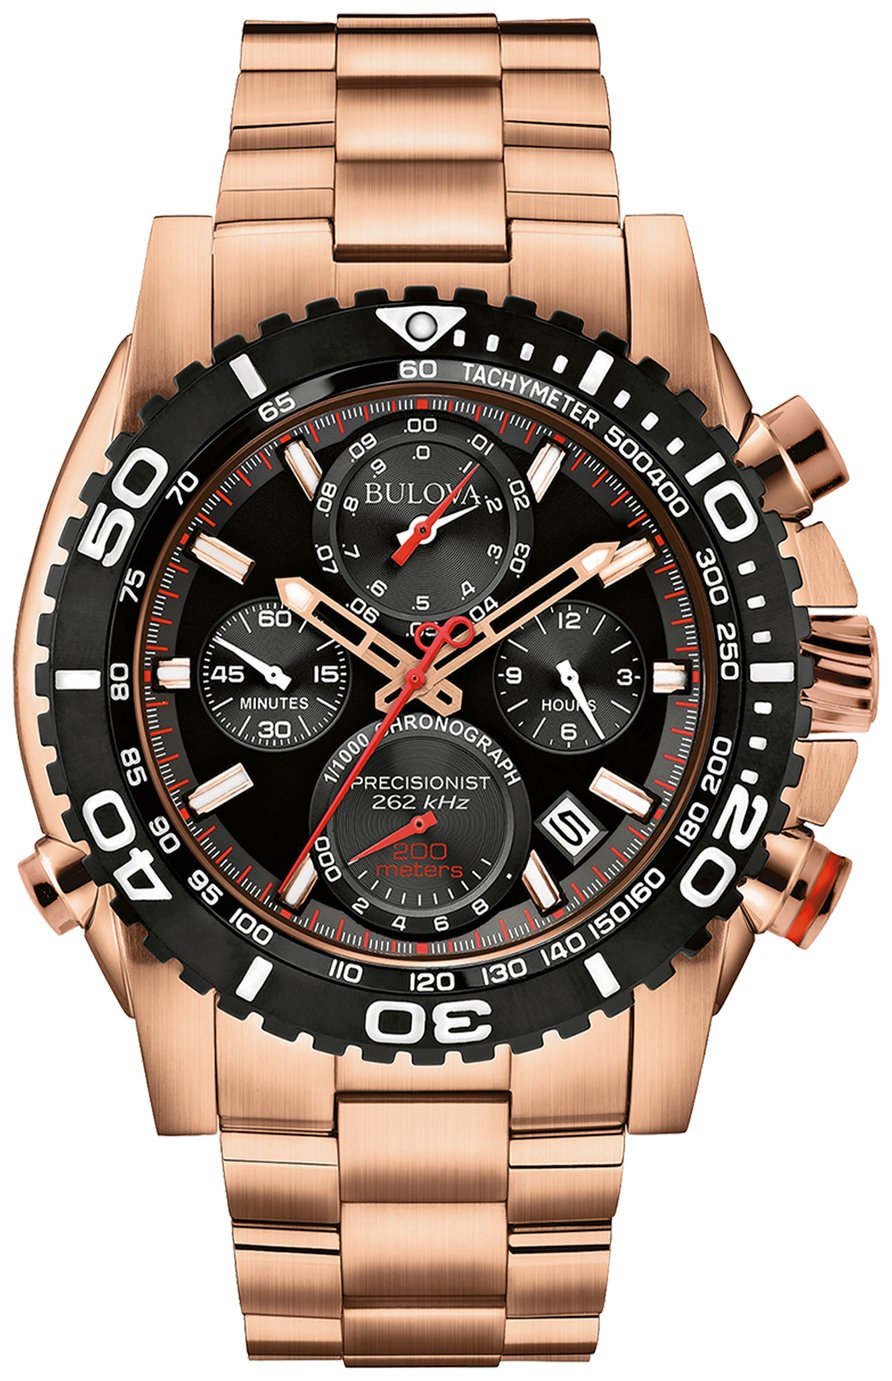 Image of Bulova Men's Precisionist Champlain Chronograph Watch